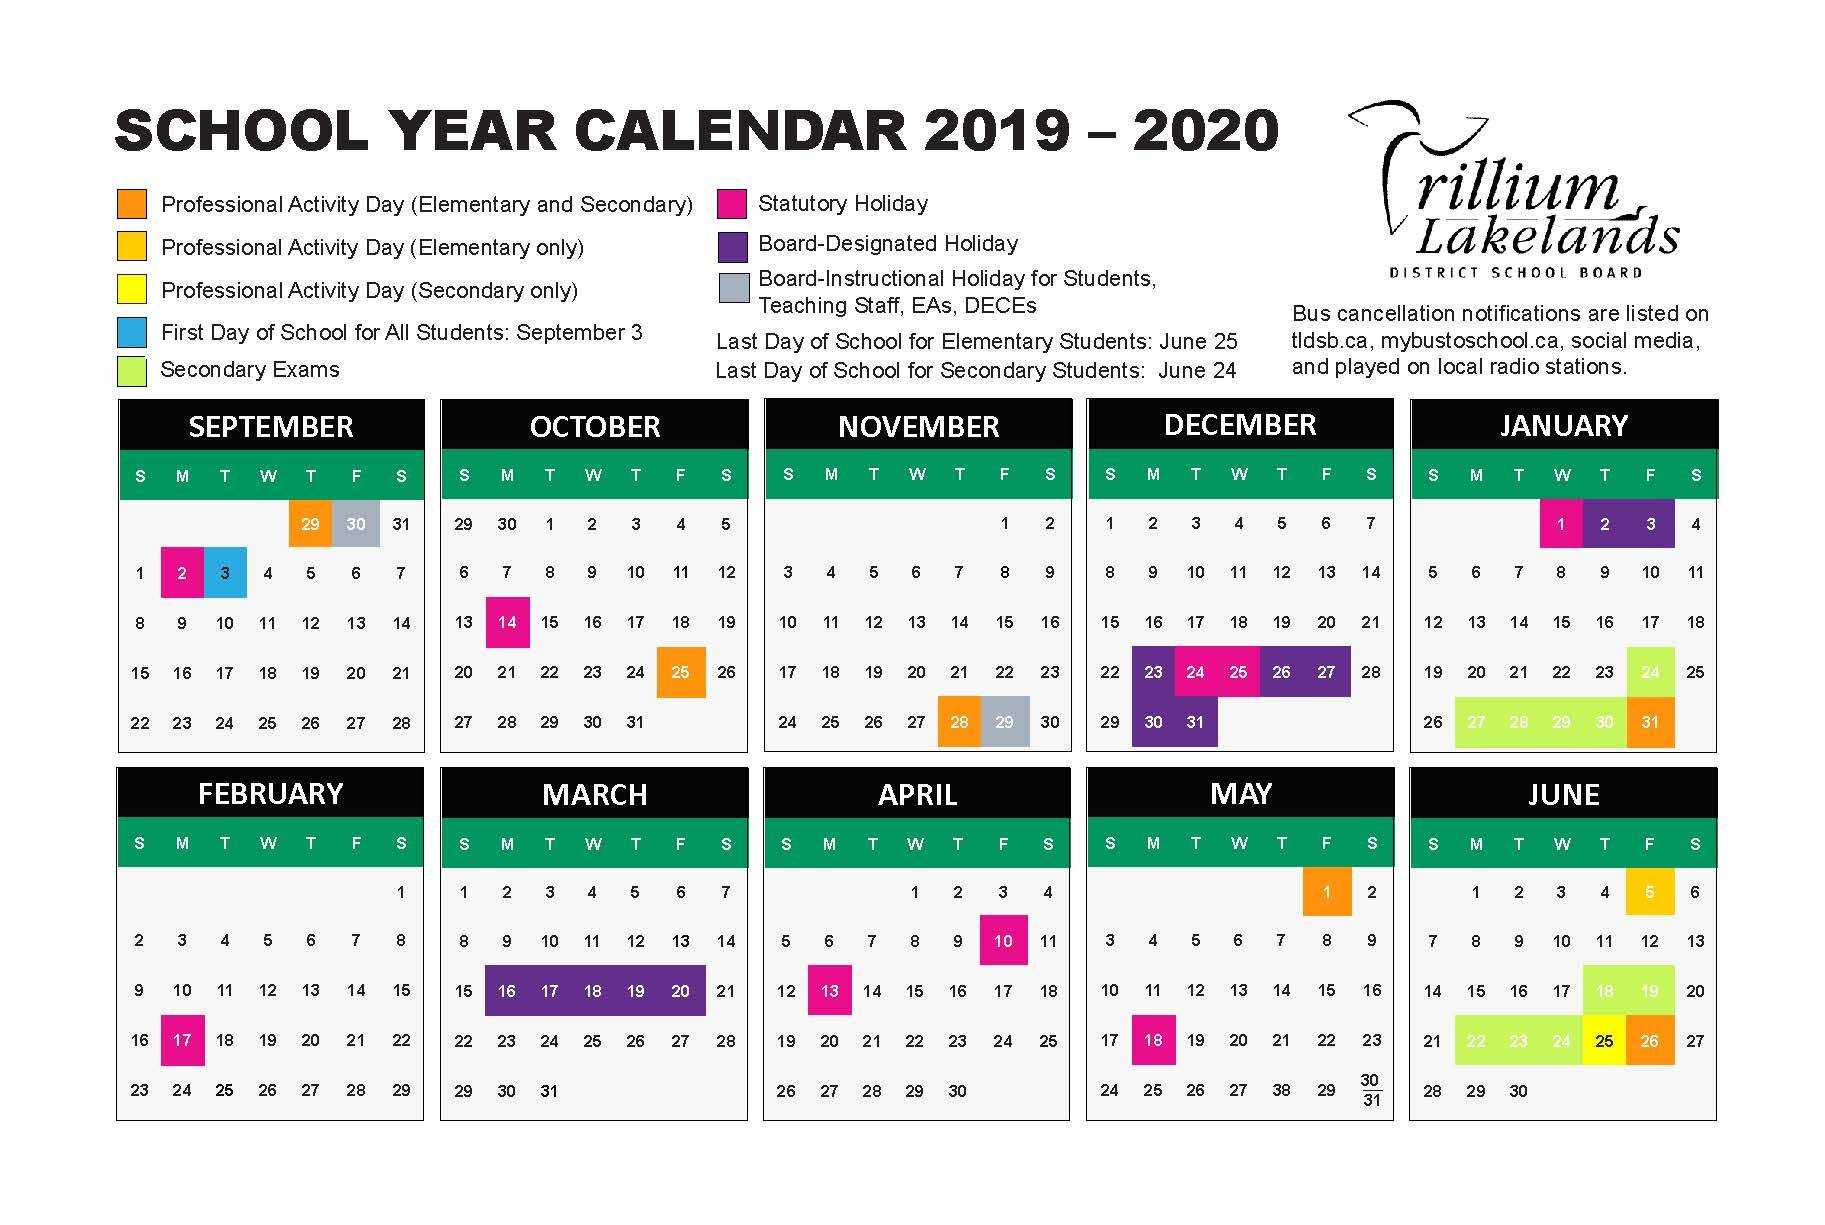 School Year Calendar – Trillium Lakelands District School Board U Of L Calendar 2019